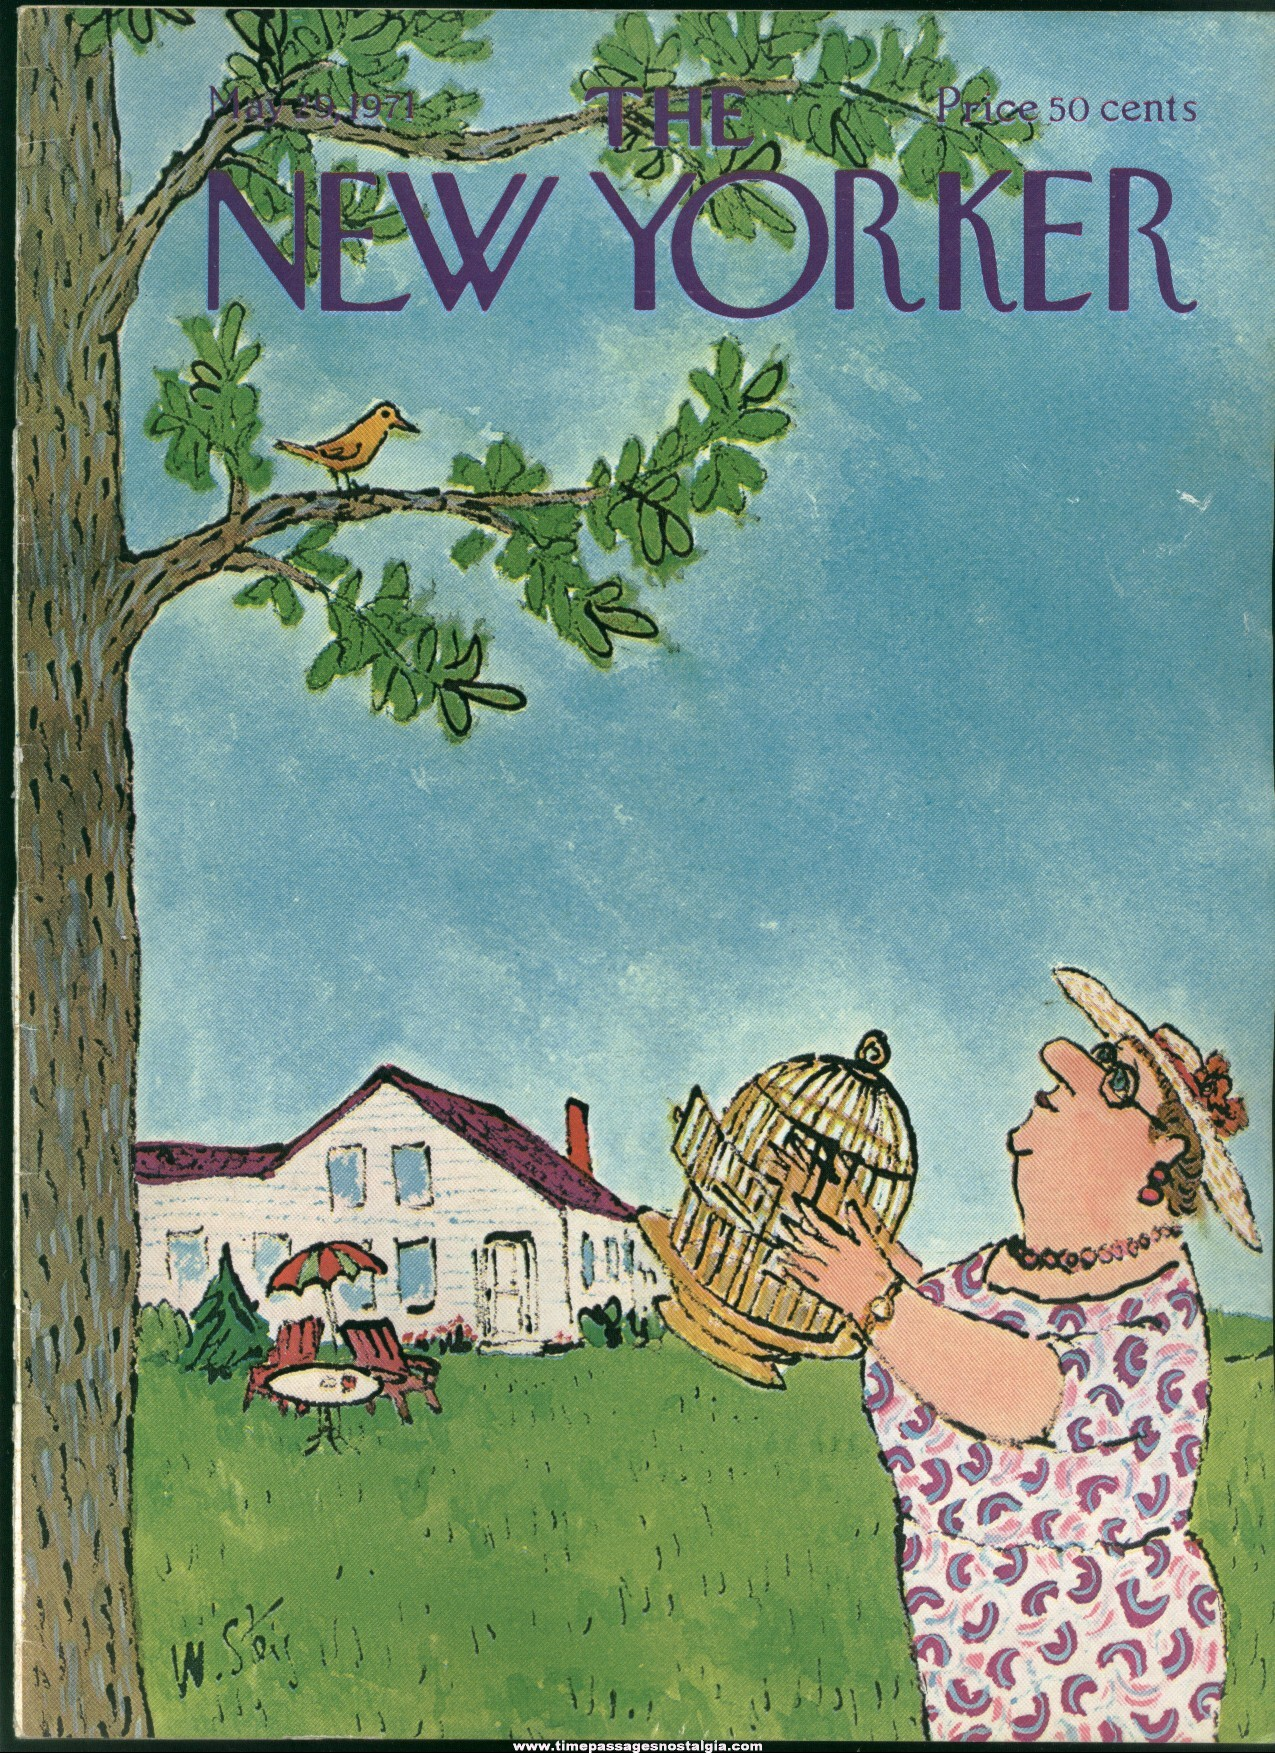 New Yorker Magazine - May 29, 1971 - Cover by William Steig